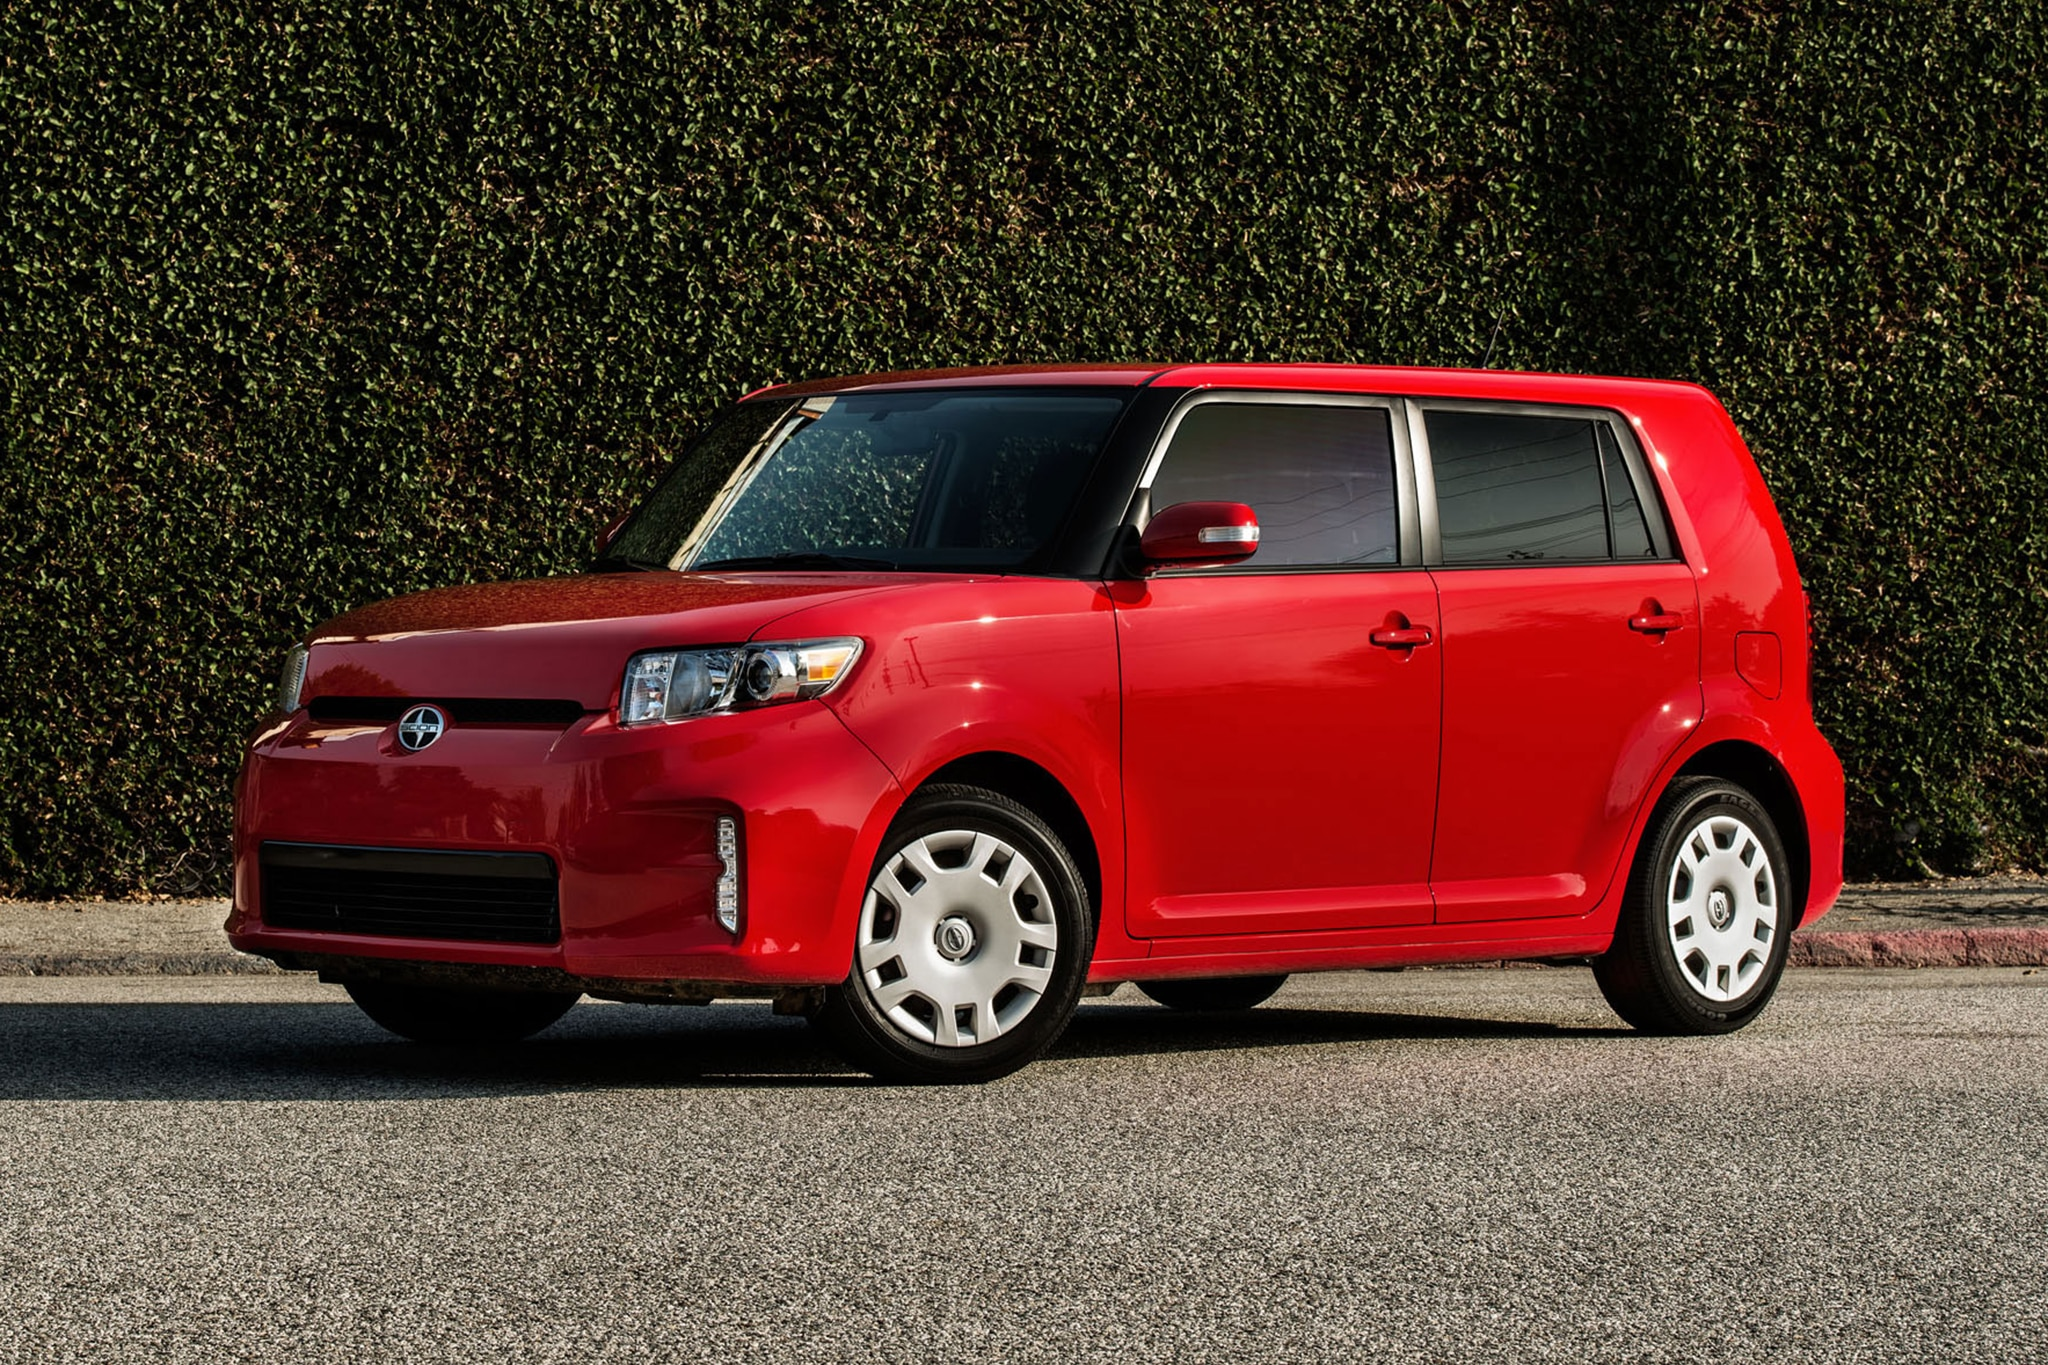 2013 Scion XB Three Quarters1